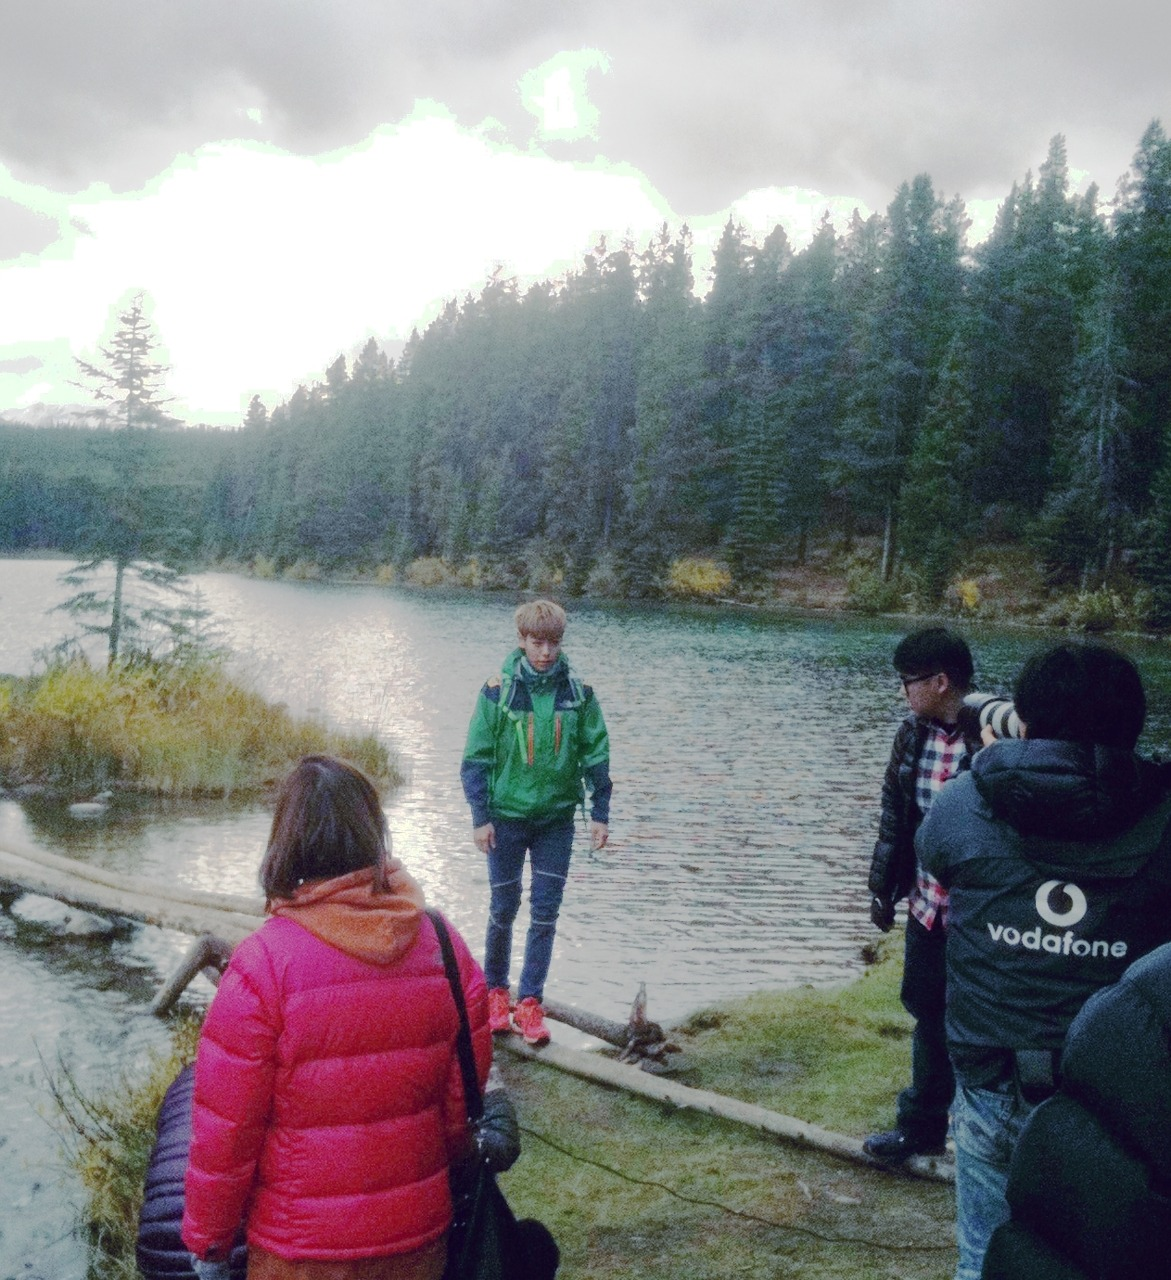 Another FanTaken Photo of TOP Shooting for The North Face in Canada source : @Real_Banff Previous pictures are here.